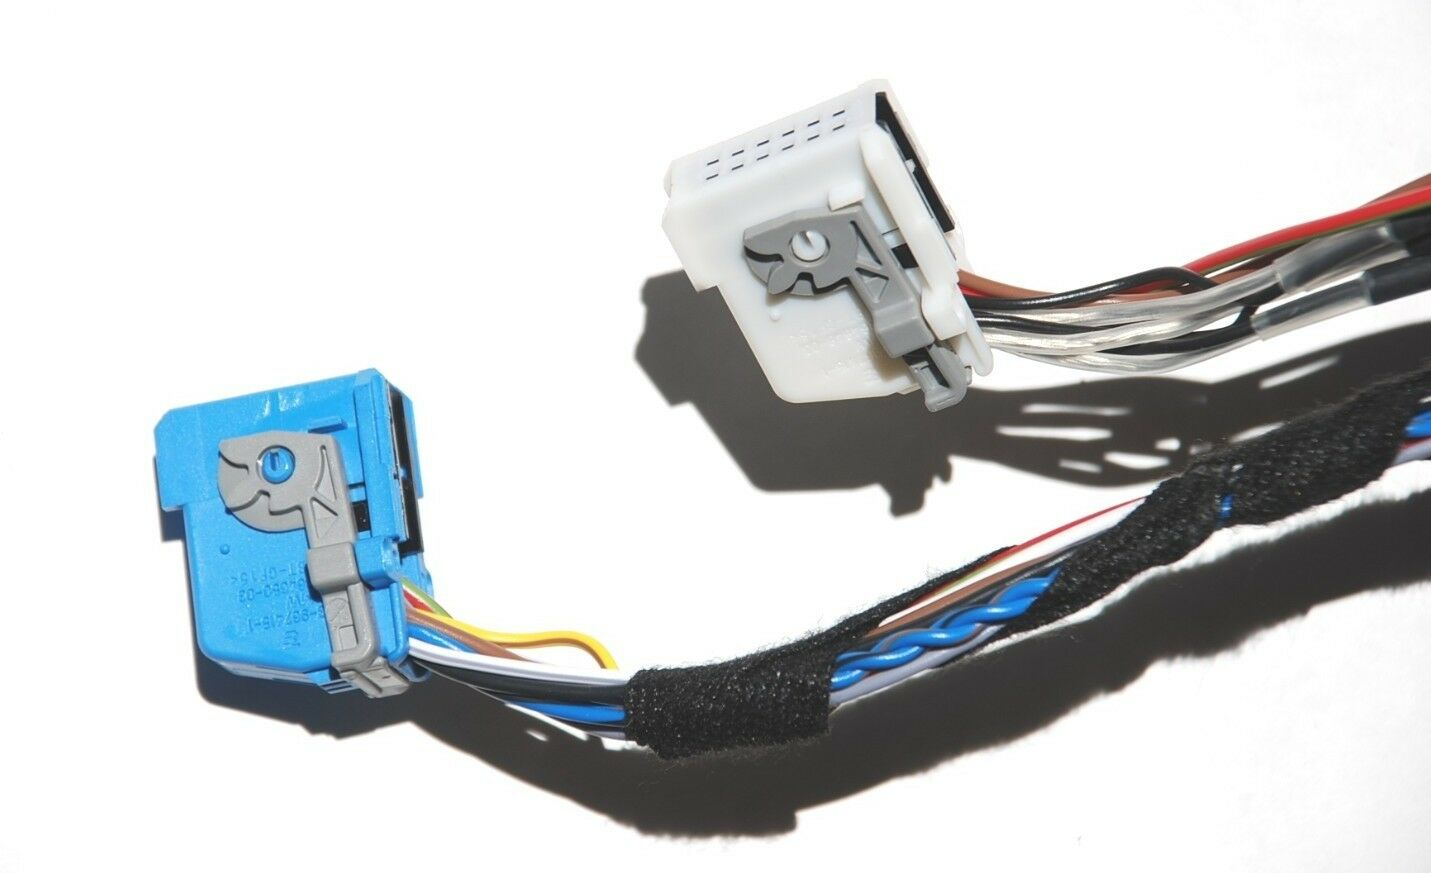 Bmw E46 Wiring Harness Adapter Solutions 325i Radio Wire 3 Series M3 Navigation System Retrofit